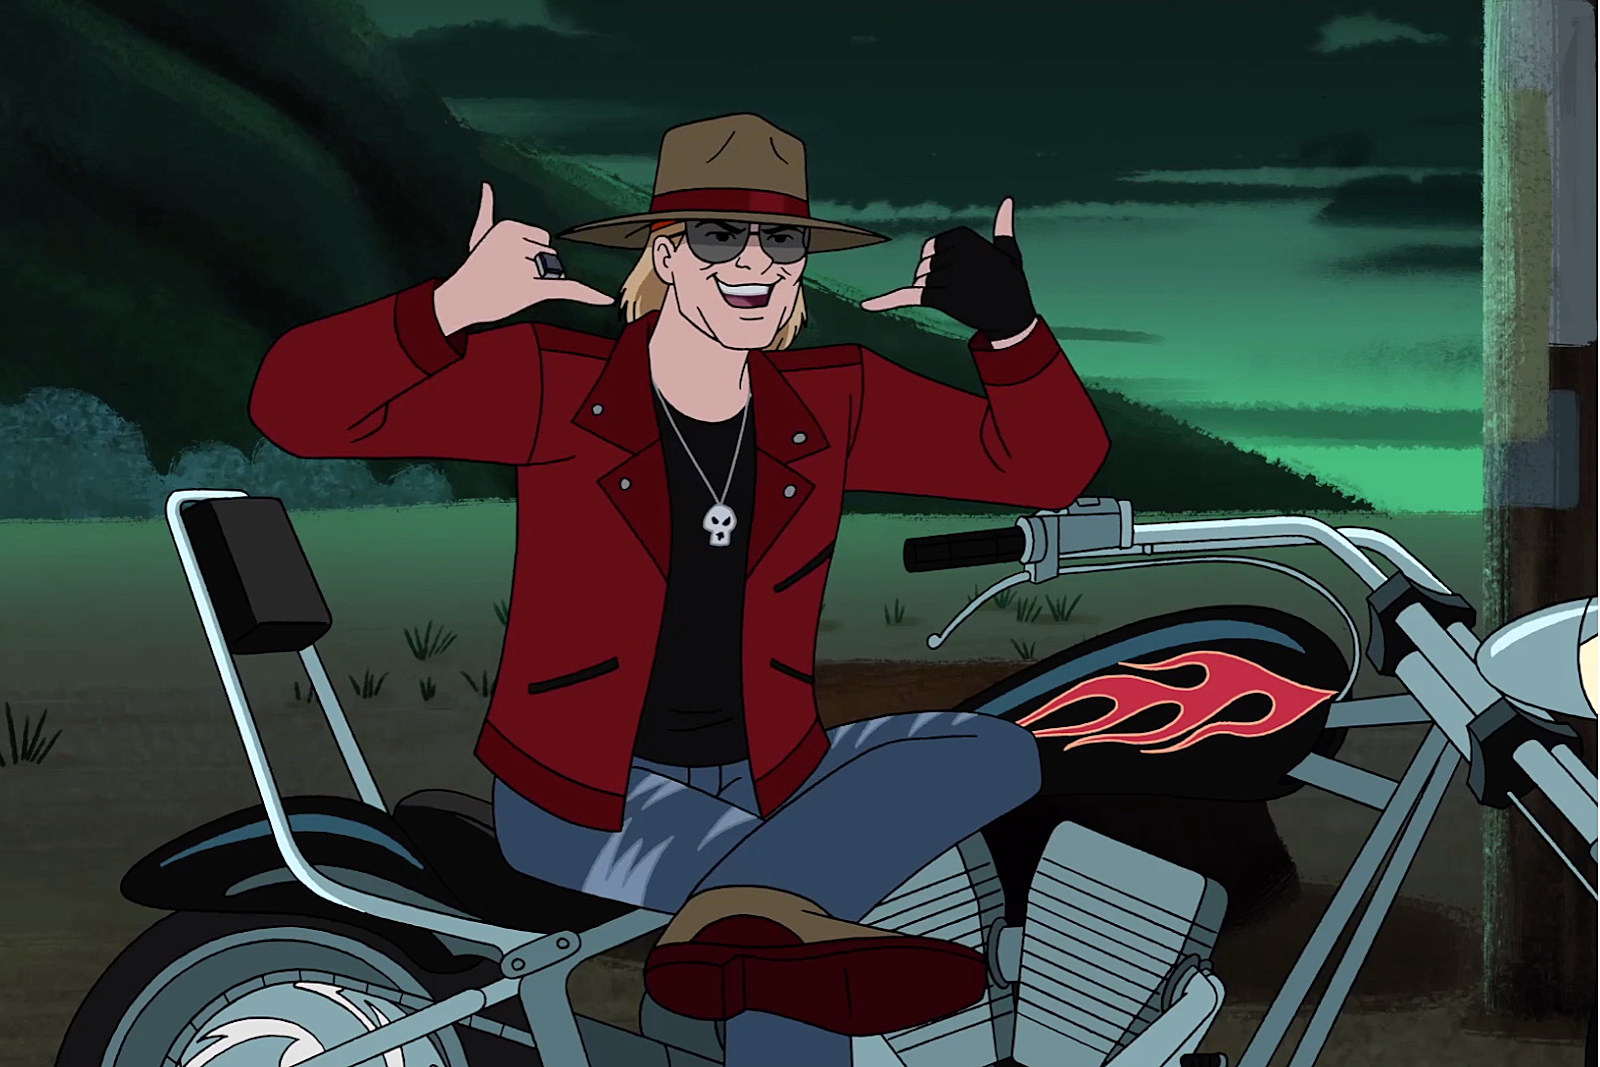 Axl Rose Set to Appear in New 'Scooby-Doo' Episode